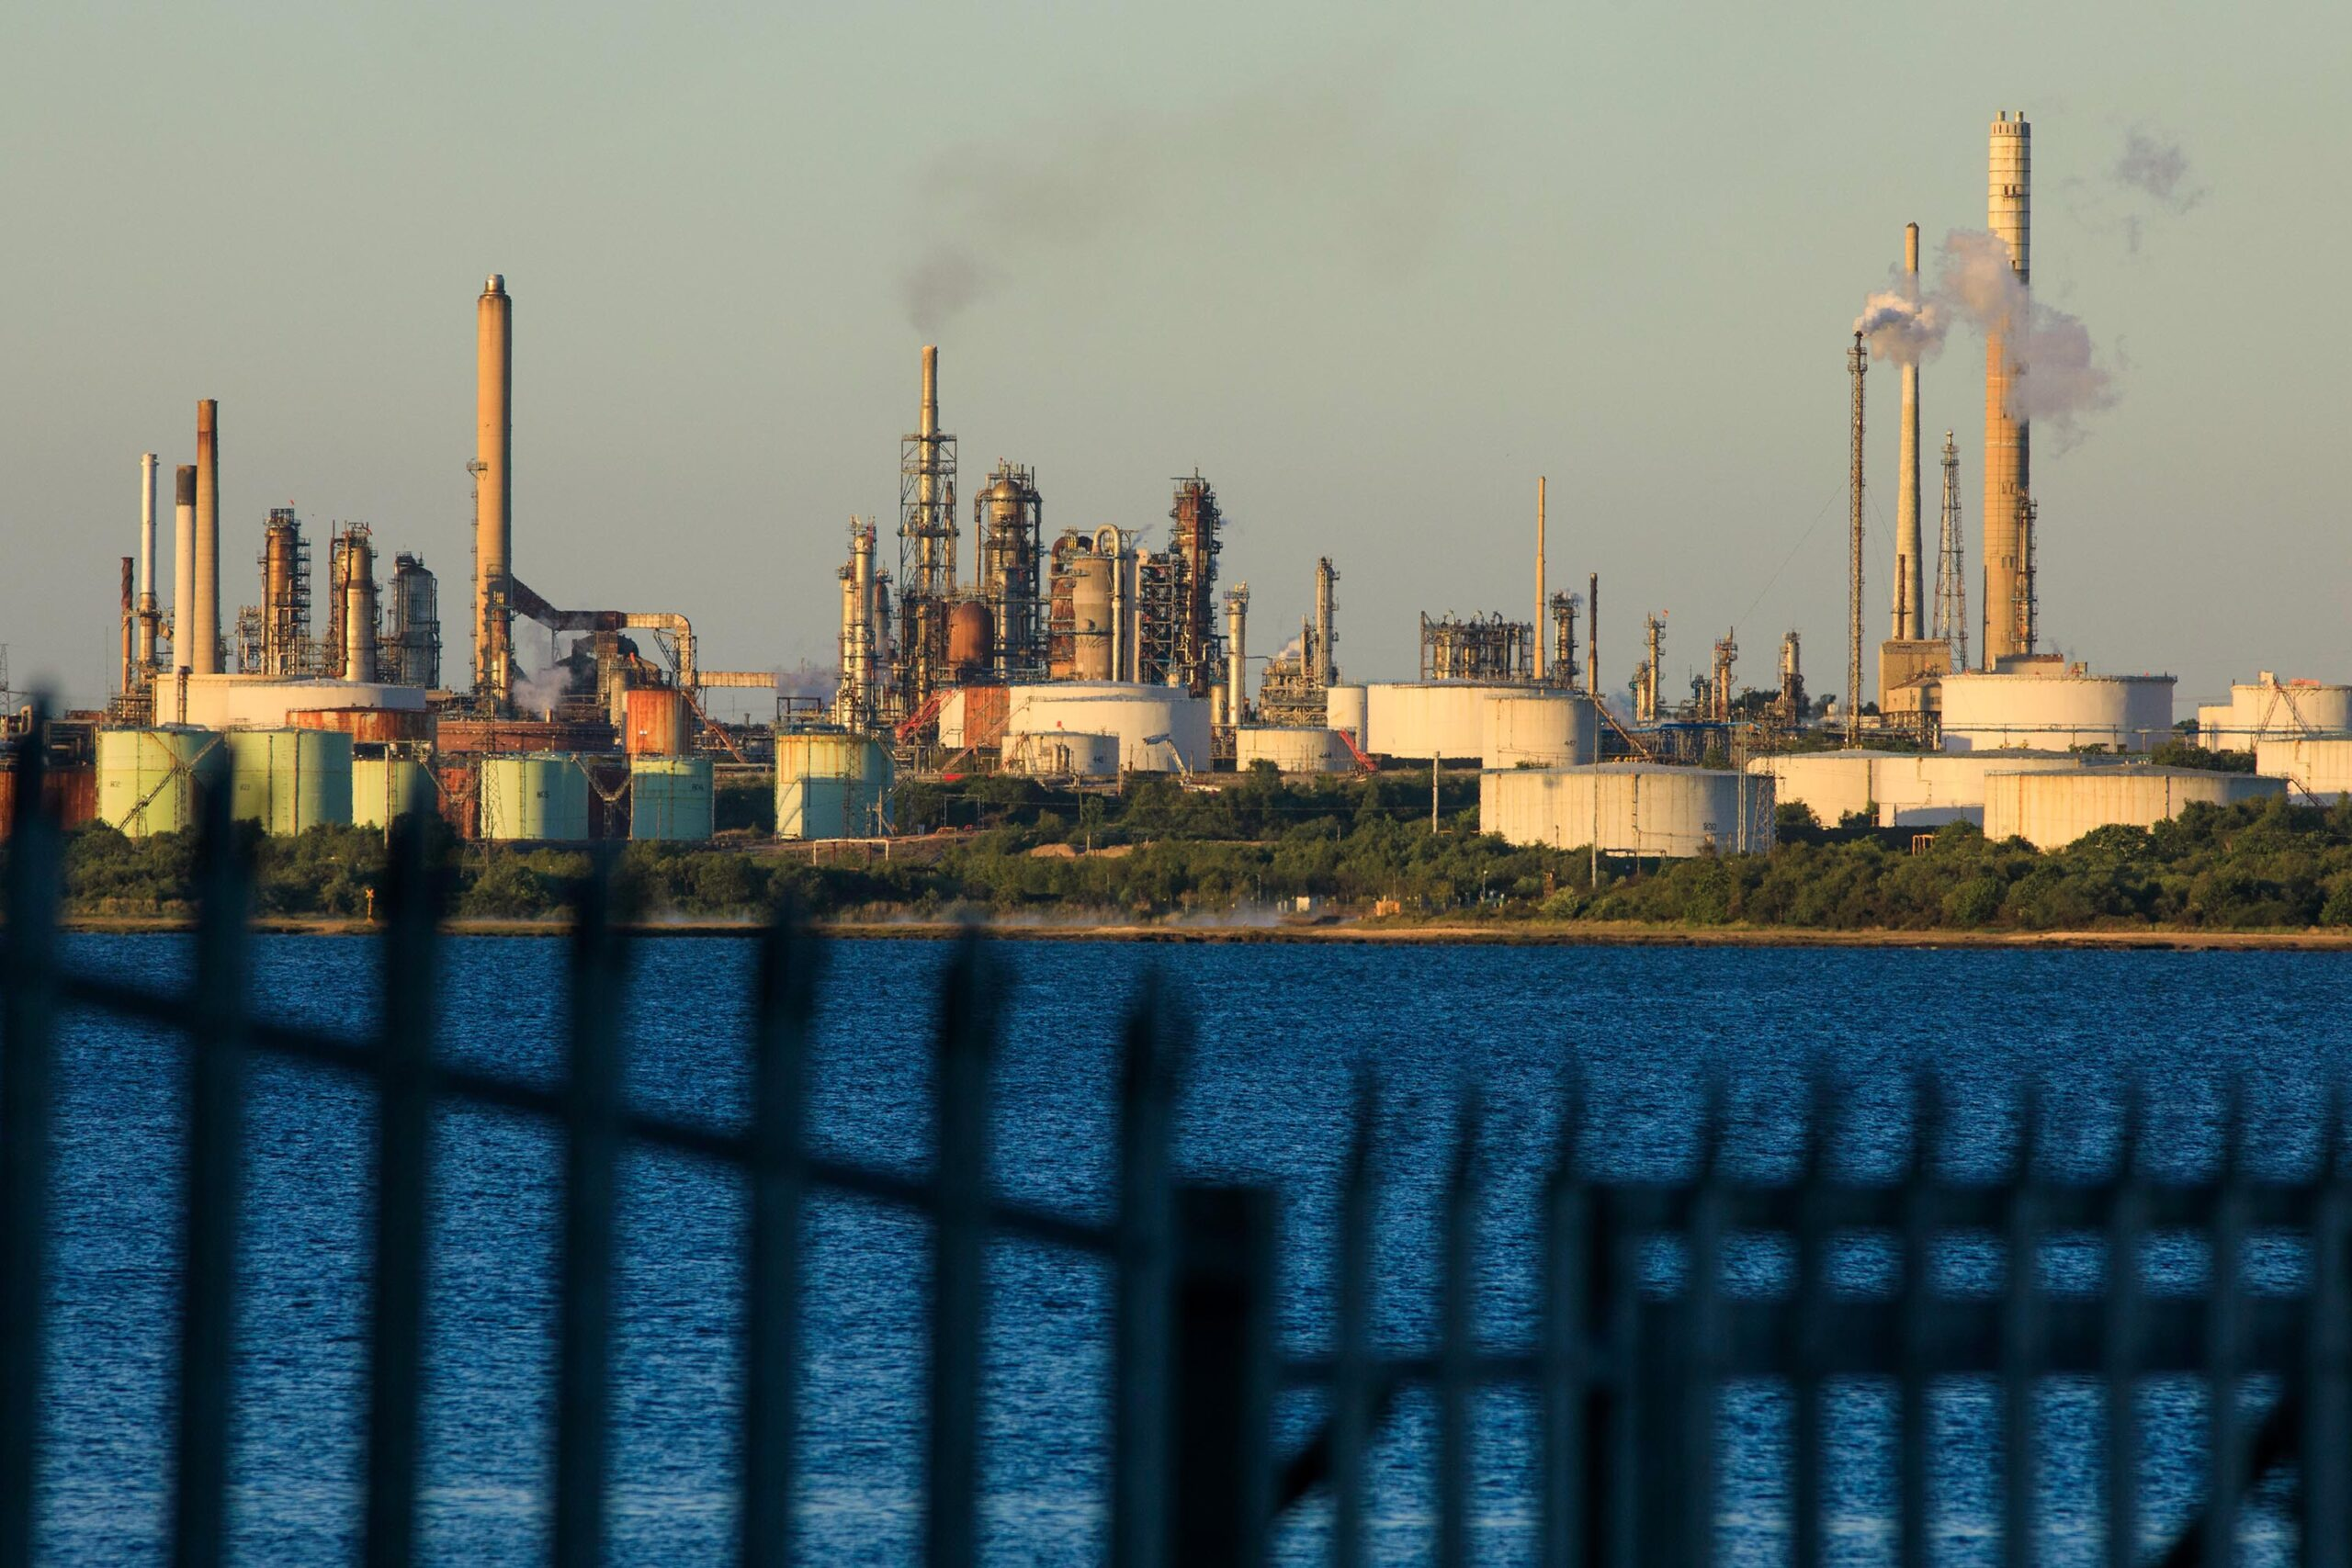 <i>Luke MacGregor/Bloomberg/Getty Images</i><br/>The House Oversight and Reform Committee announces its launching an investigation into fossil fuel industry disinformation on the climate crisis